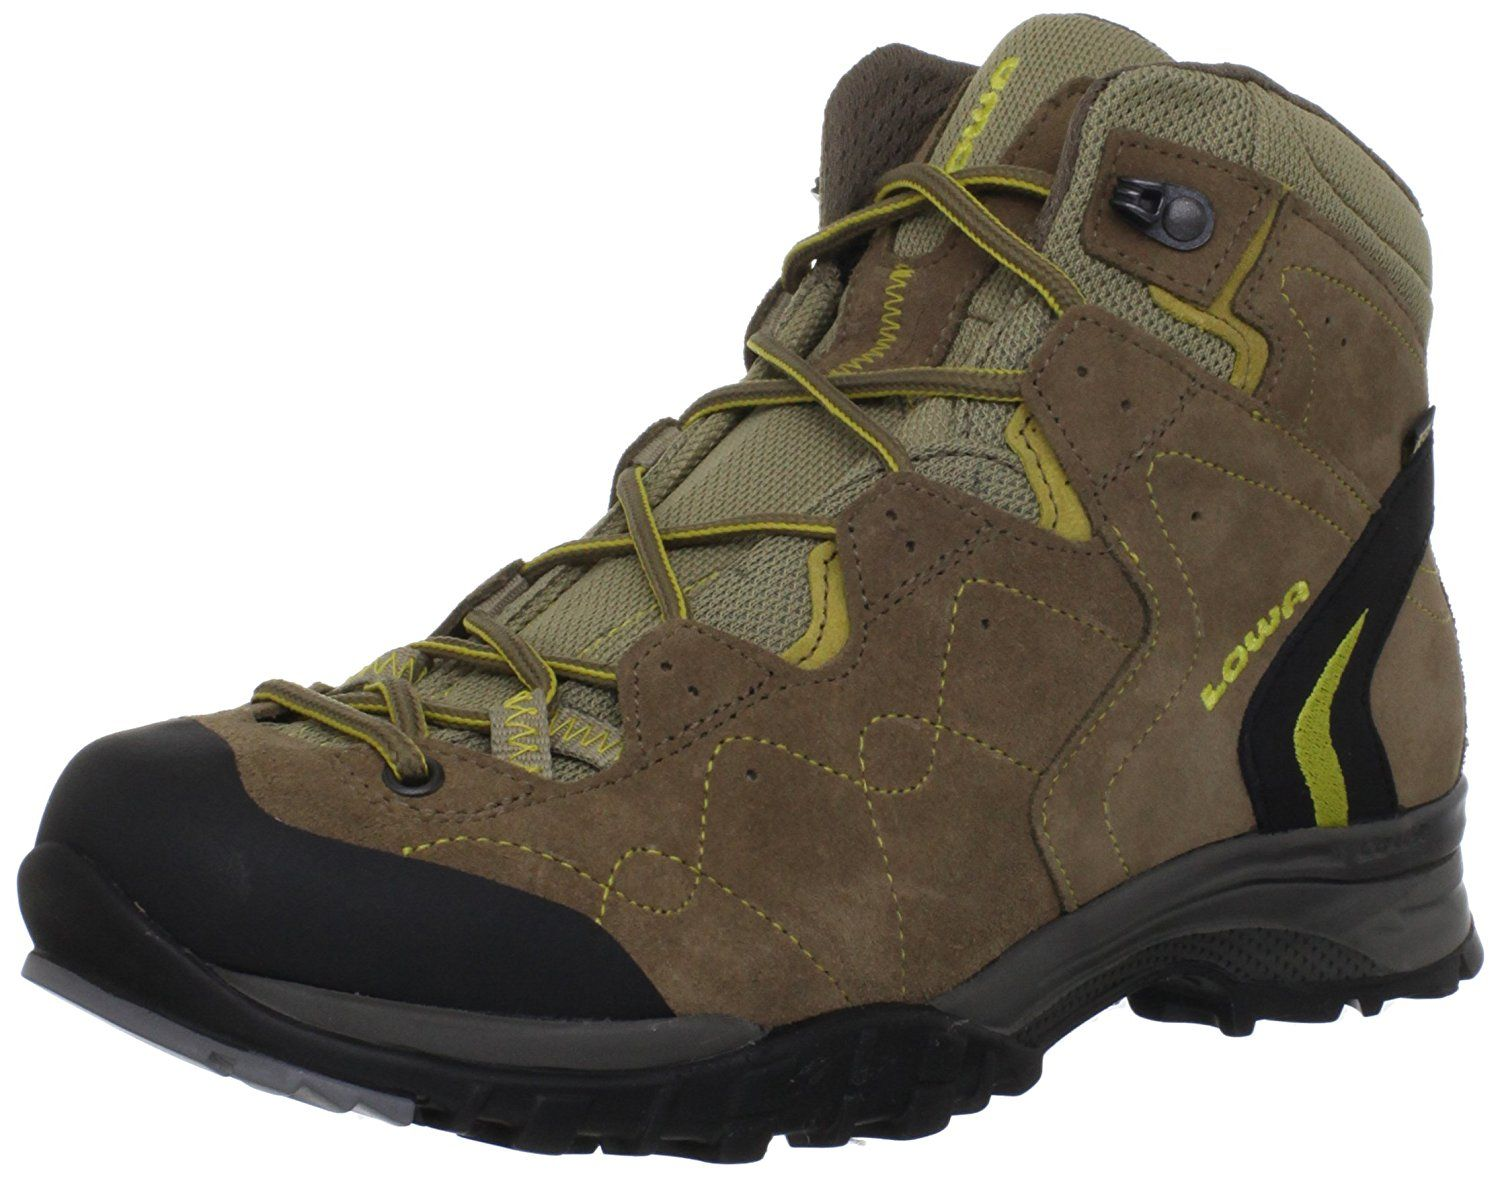 Lowa Women's Focus GTX QC Hiking Boot ** Discover this special boots, click the image : Boots